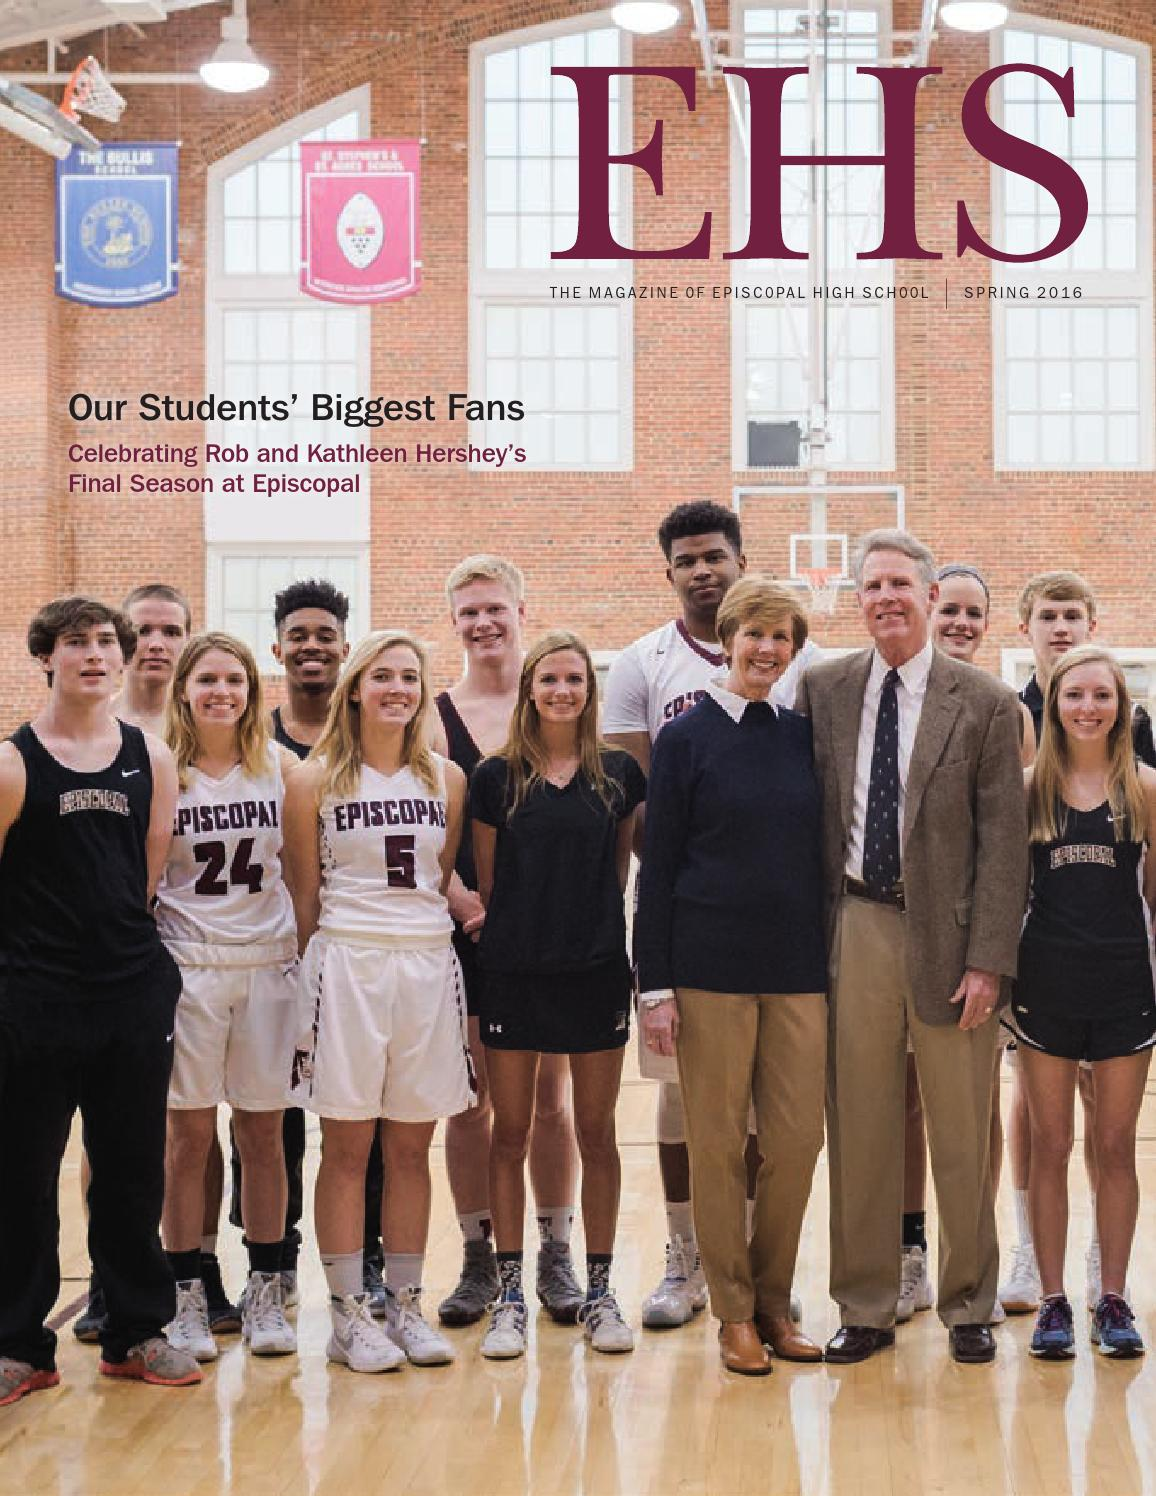 2016 EHS Spring Magazine by Episcopal High School - issuu